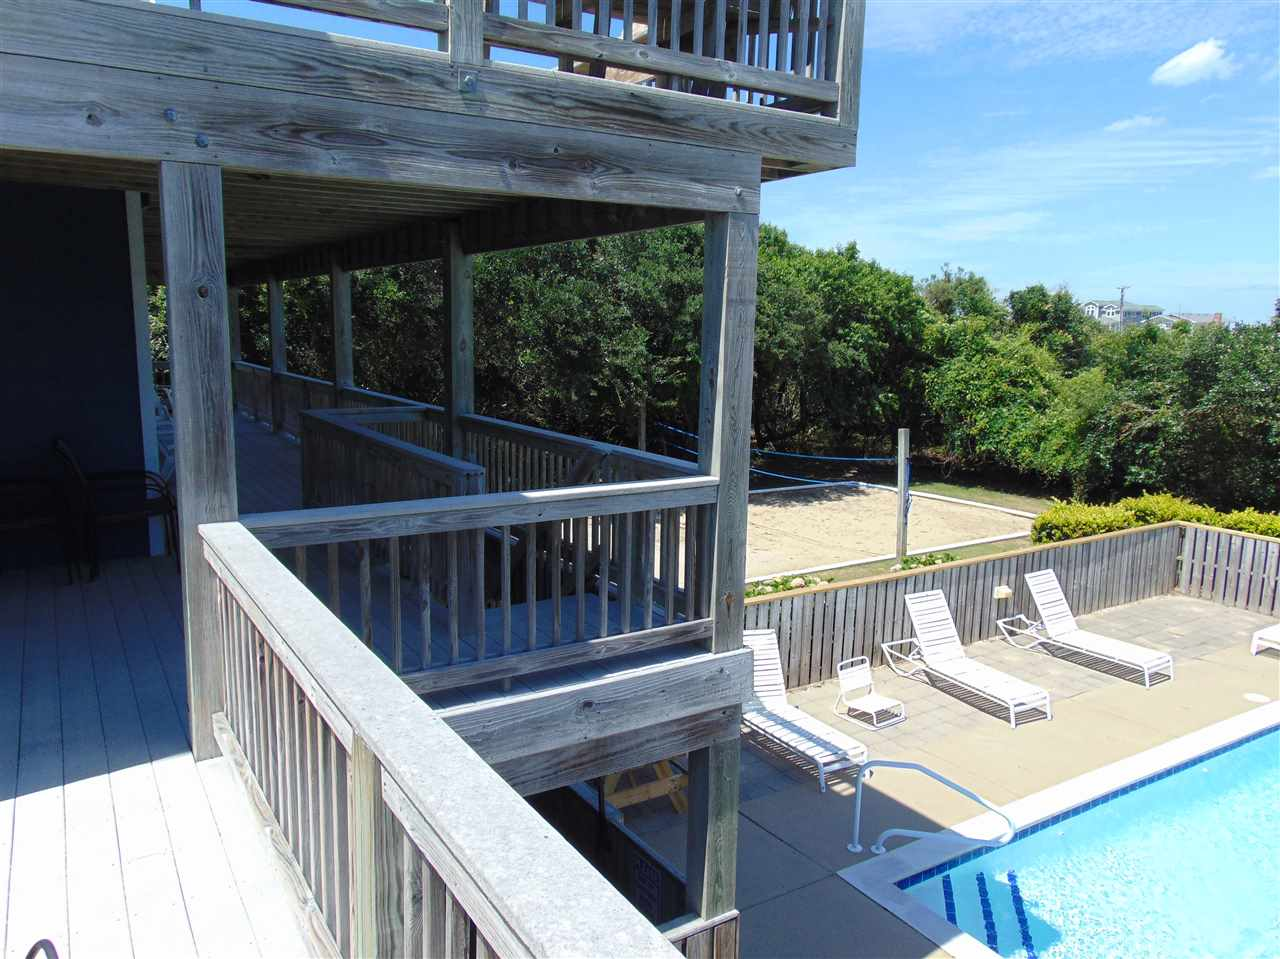 152 Duck Road,Southern Shores,NC 27949,7 Bedrooms Bedrooms,7 BathroomsBathrooms,Residential,Duck Road,96561